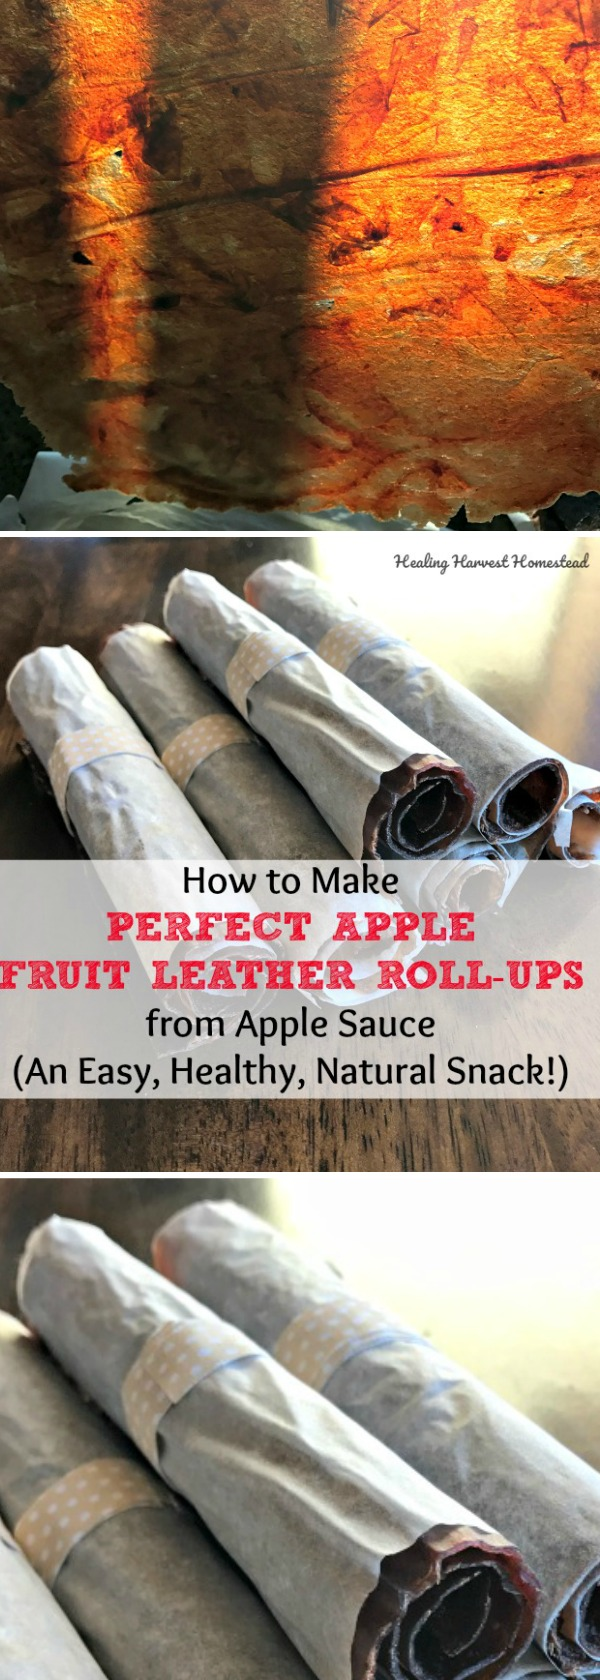 Do you have apple sauce you need to use up? OR...maybe you just want to make a natural healthy snack your kids will love? Here's a recipe and directions for how to make the perfect apple fruit leather from apple sauce! Find out how to make apple fruit roll-ups--the perfect snack for kids and grown ups too.